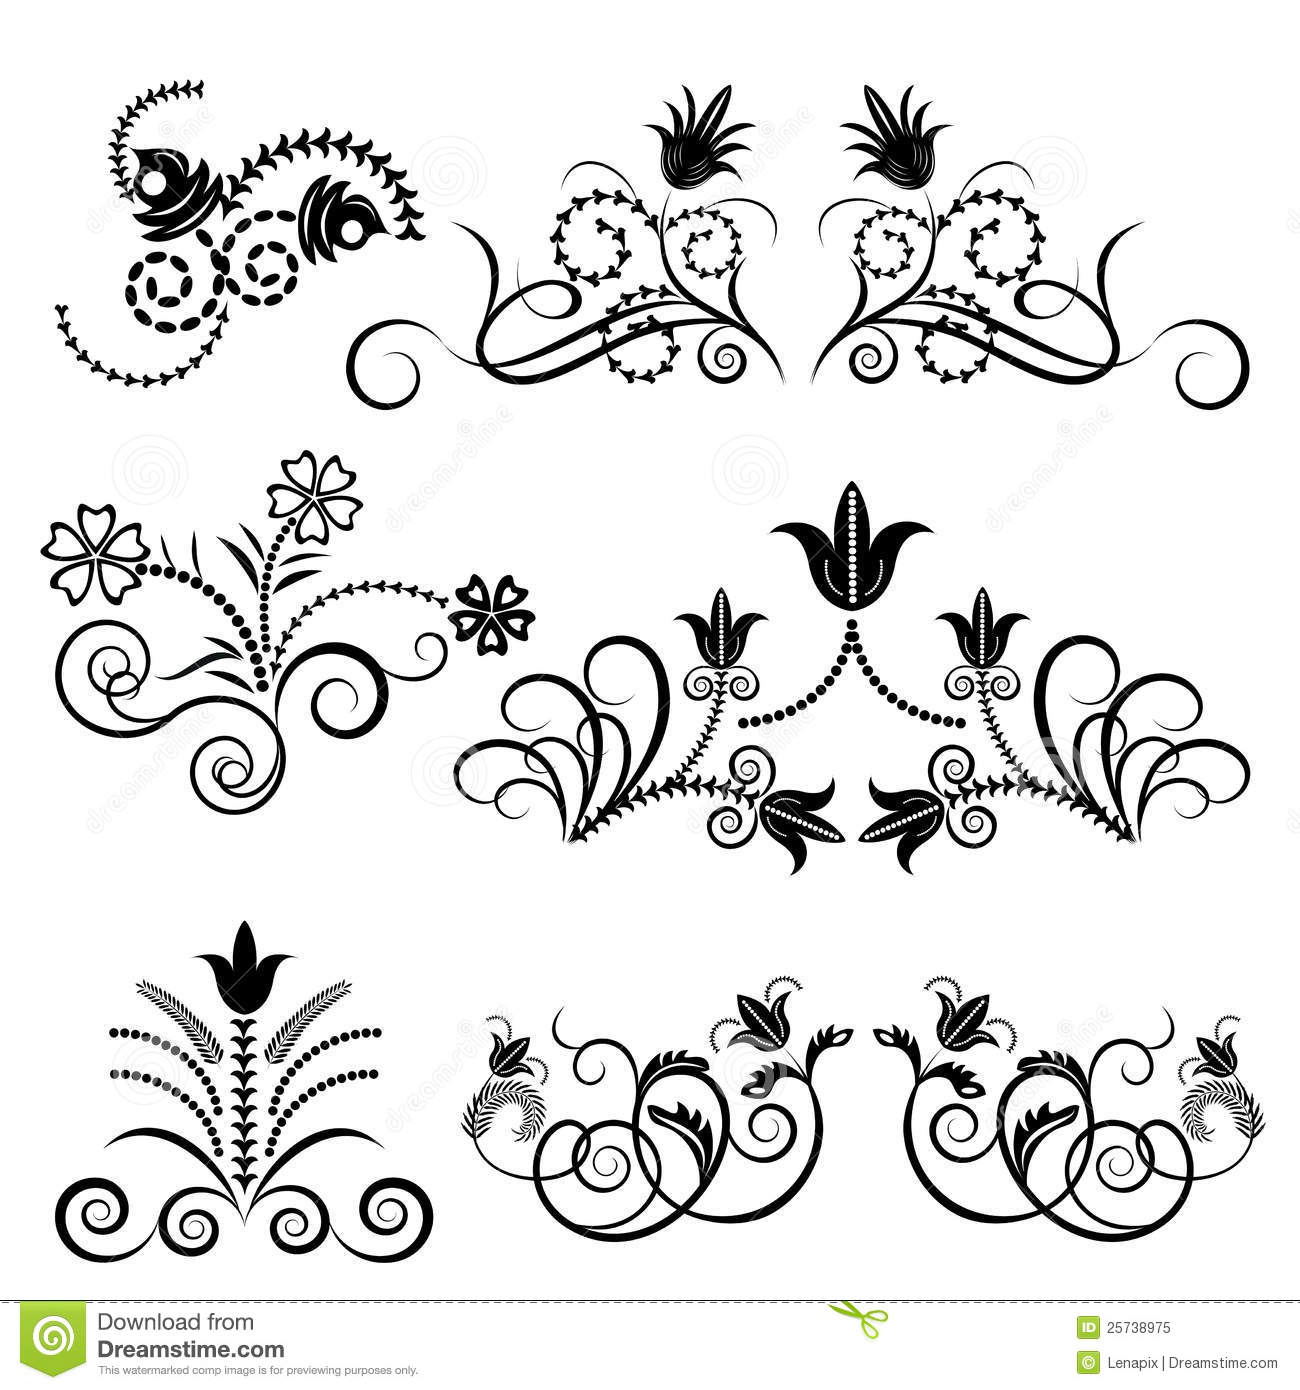 Flower border design black and white comousar flower border design black and white black and white floral design mightylinksfo Image collections